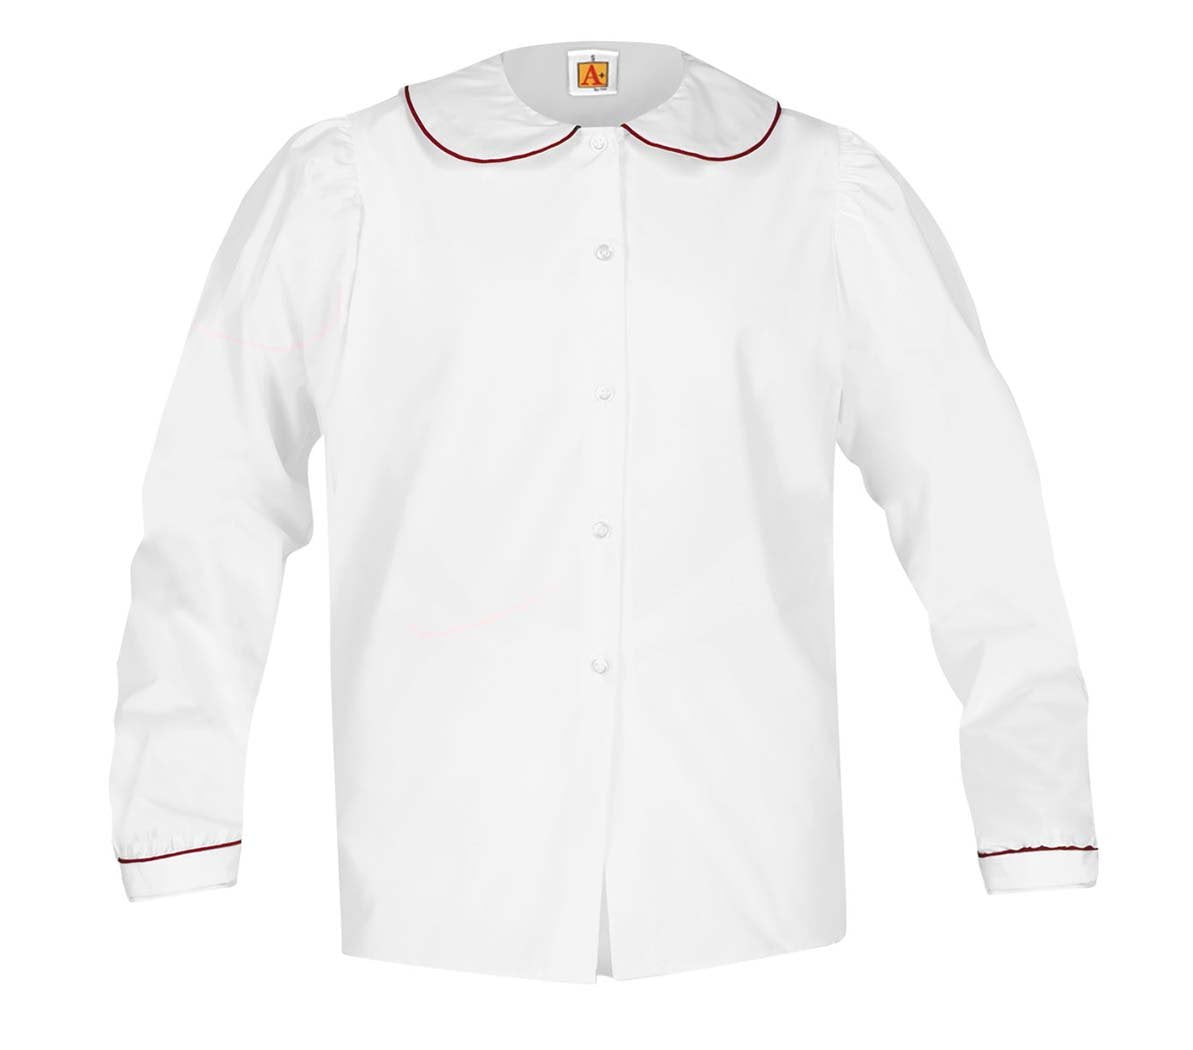 Girls Long Sleeve Blouse with Trim White w Red Trim